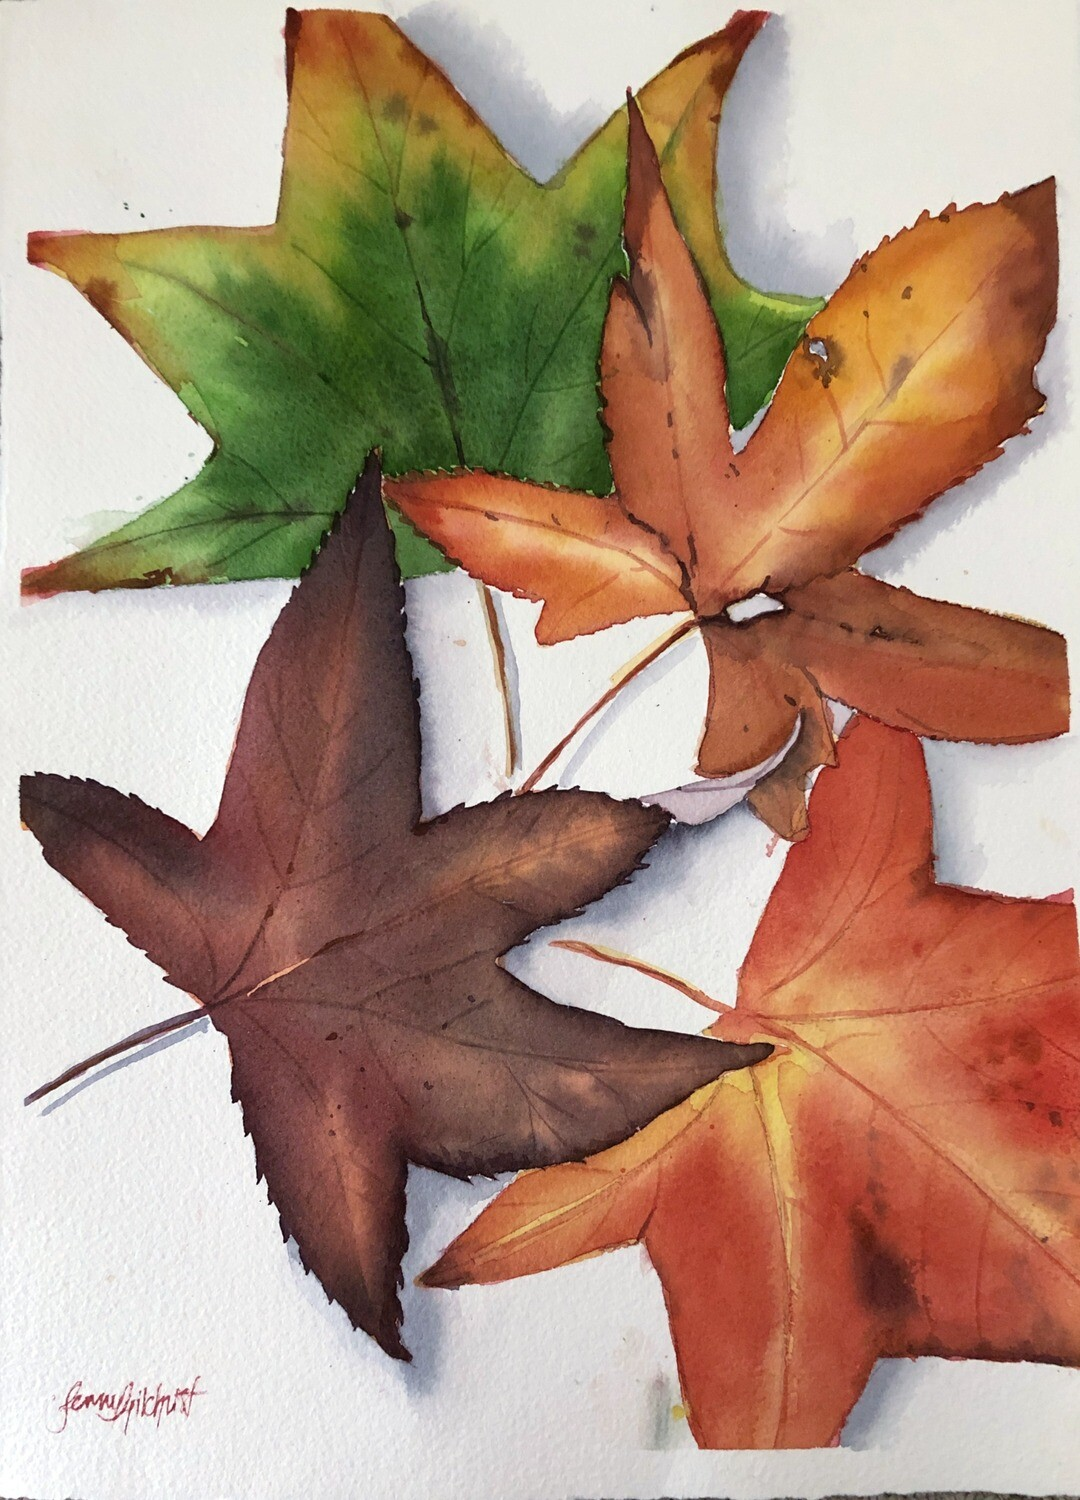 PAINTING for Sale: Lovely Leaves - Medium - 1/4th sheet original watercolour by Jenny Gilchrist